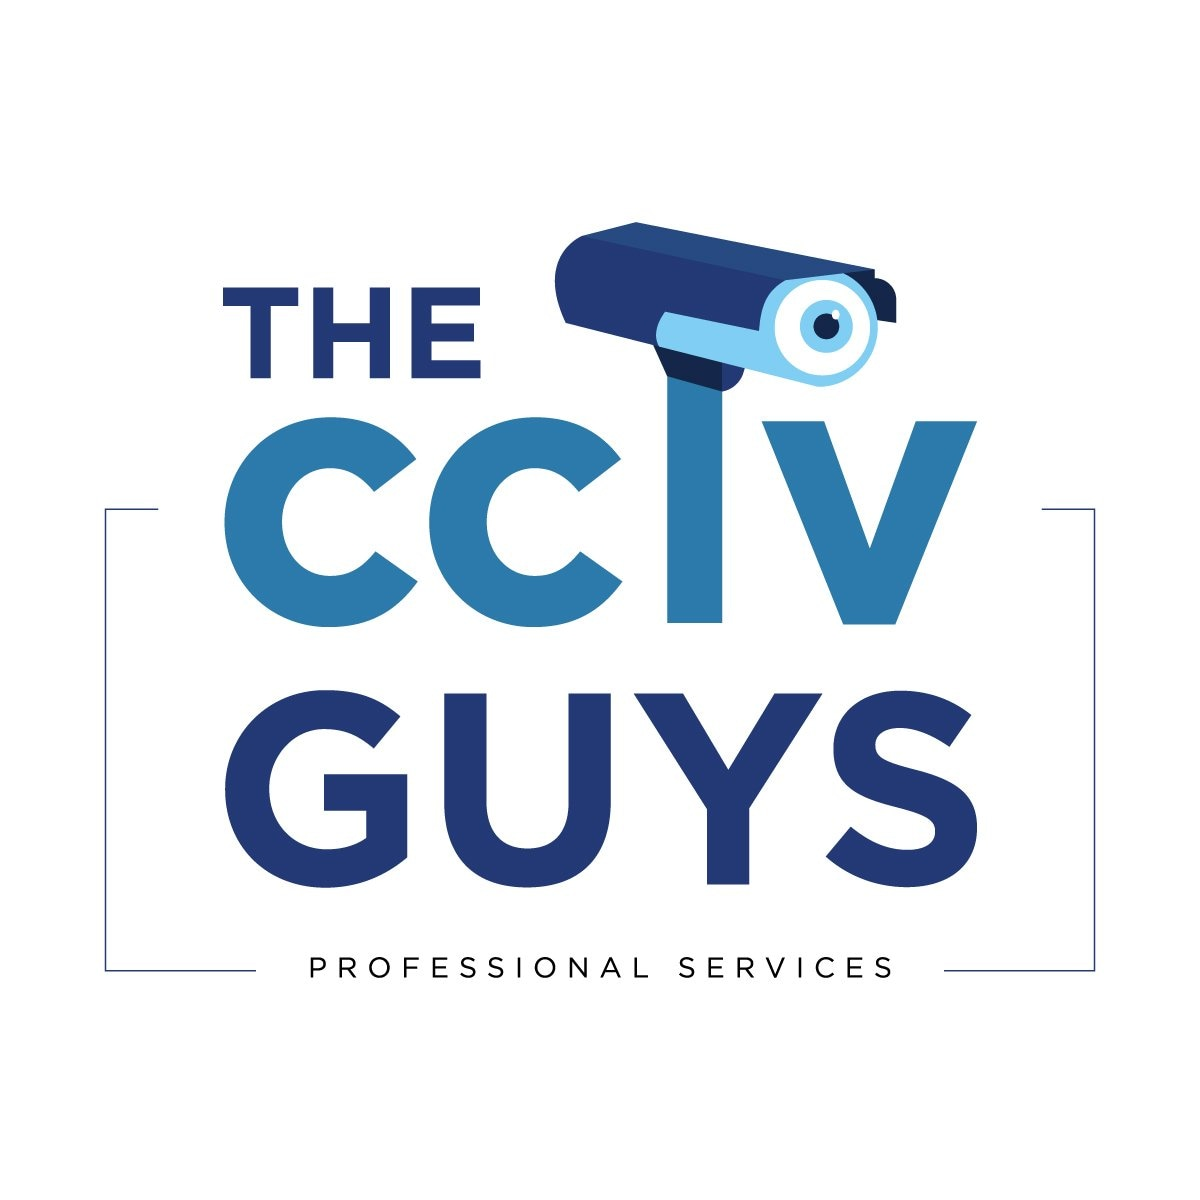 The CCTV Guys Professional Services